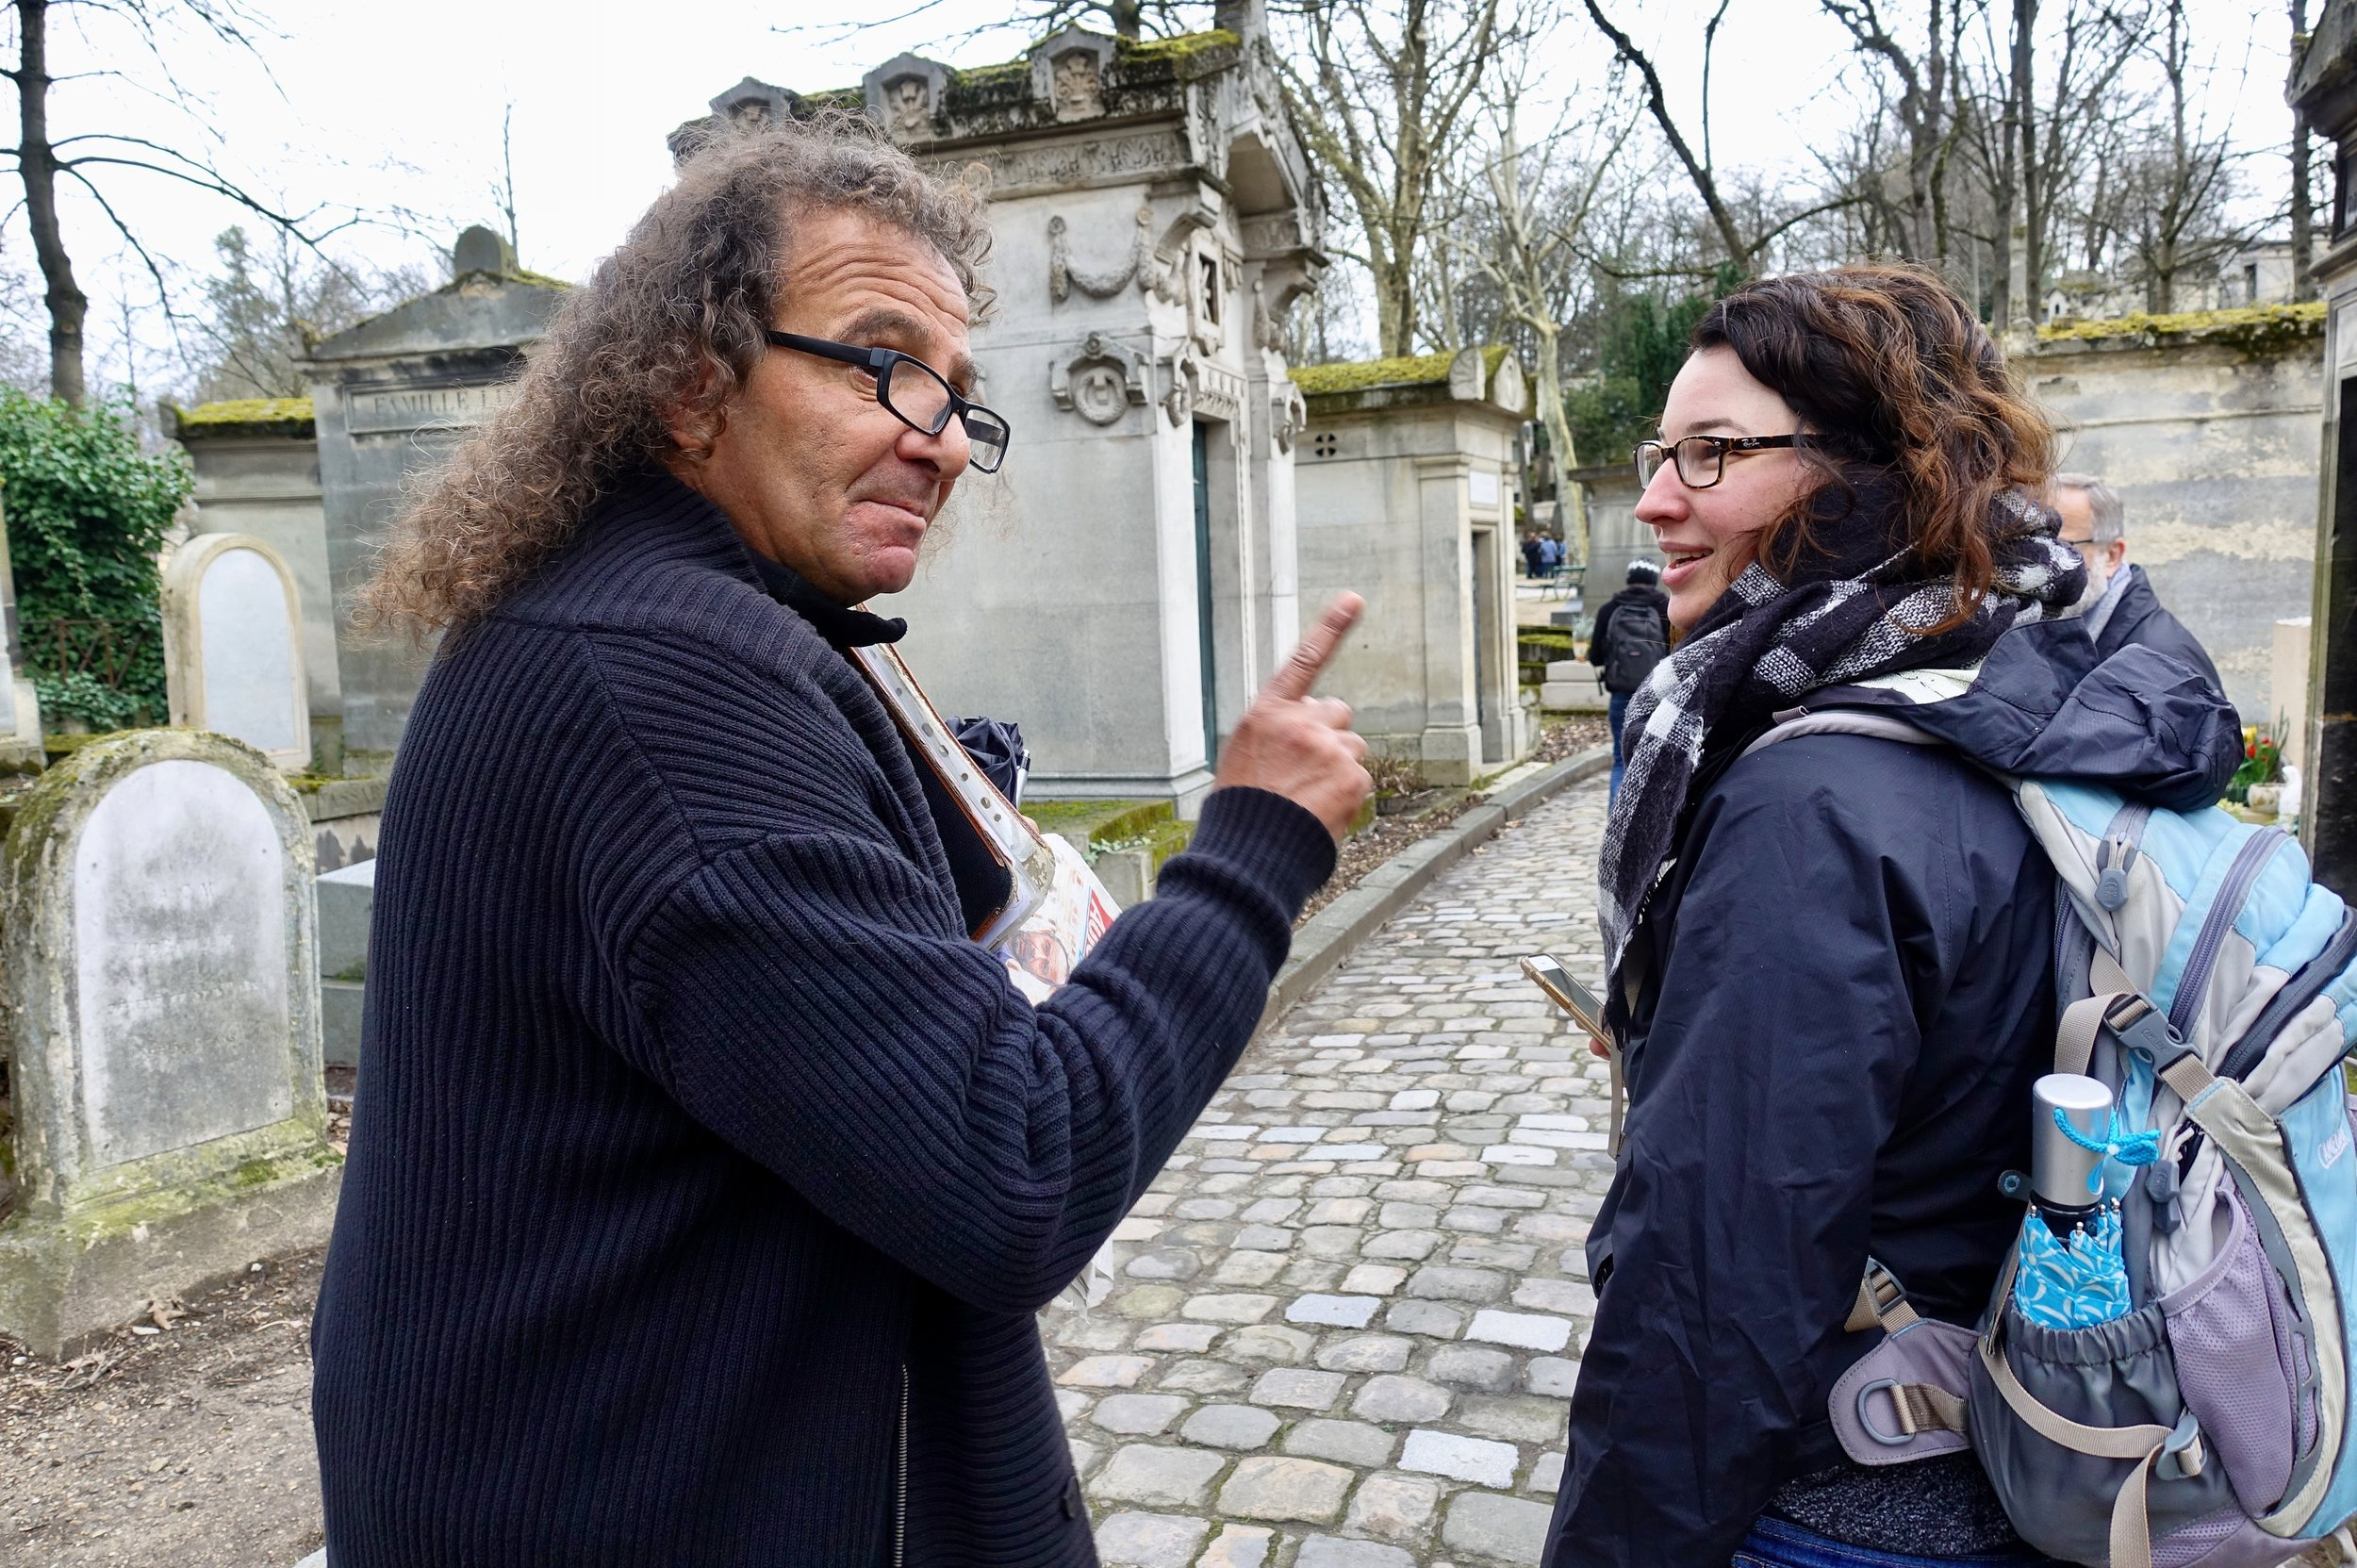 In Père Lachaise Cemetery with the friendliest ghost. Photo by Jane Mitchell.